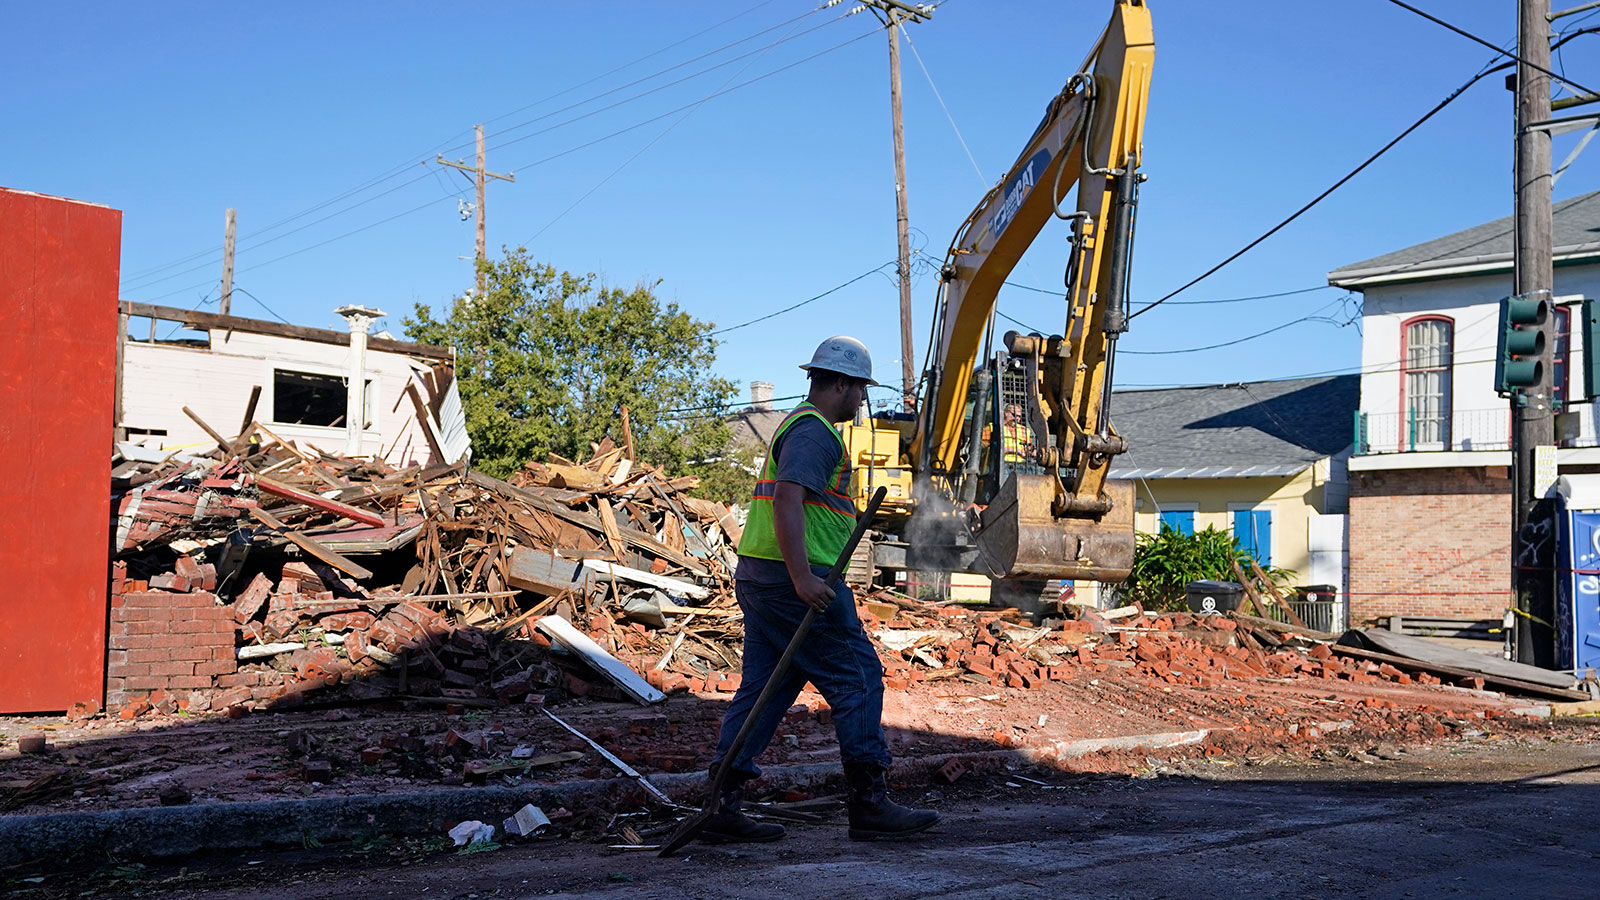 Workers remove debris from an unoccupied structure that collapsed yesterday as Hurricane Zeta passed through in New Orleans, Thursday, Oct. 29, 2020.